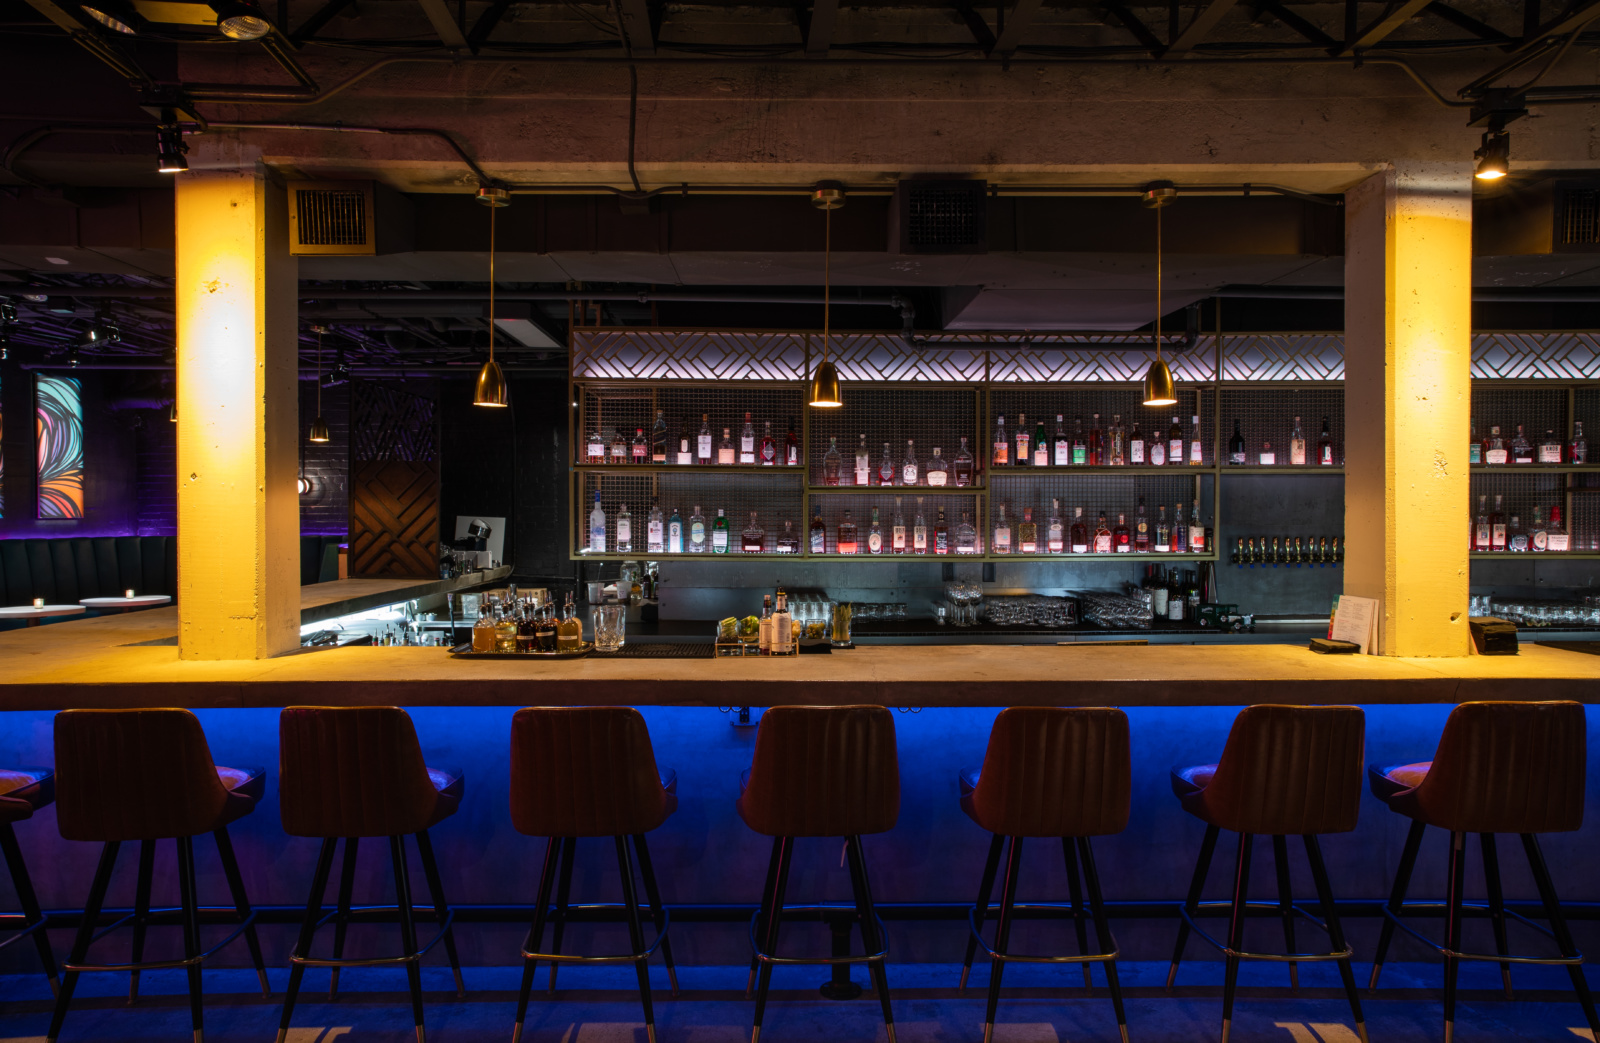 An image of the bar at Rambler with brown leather stools and neon lights